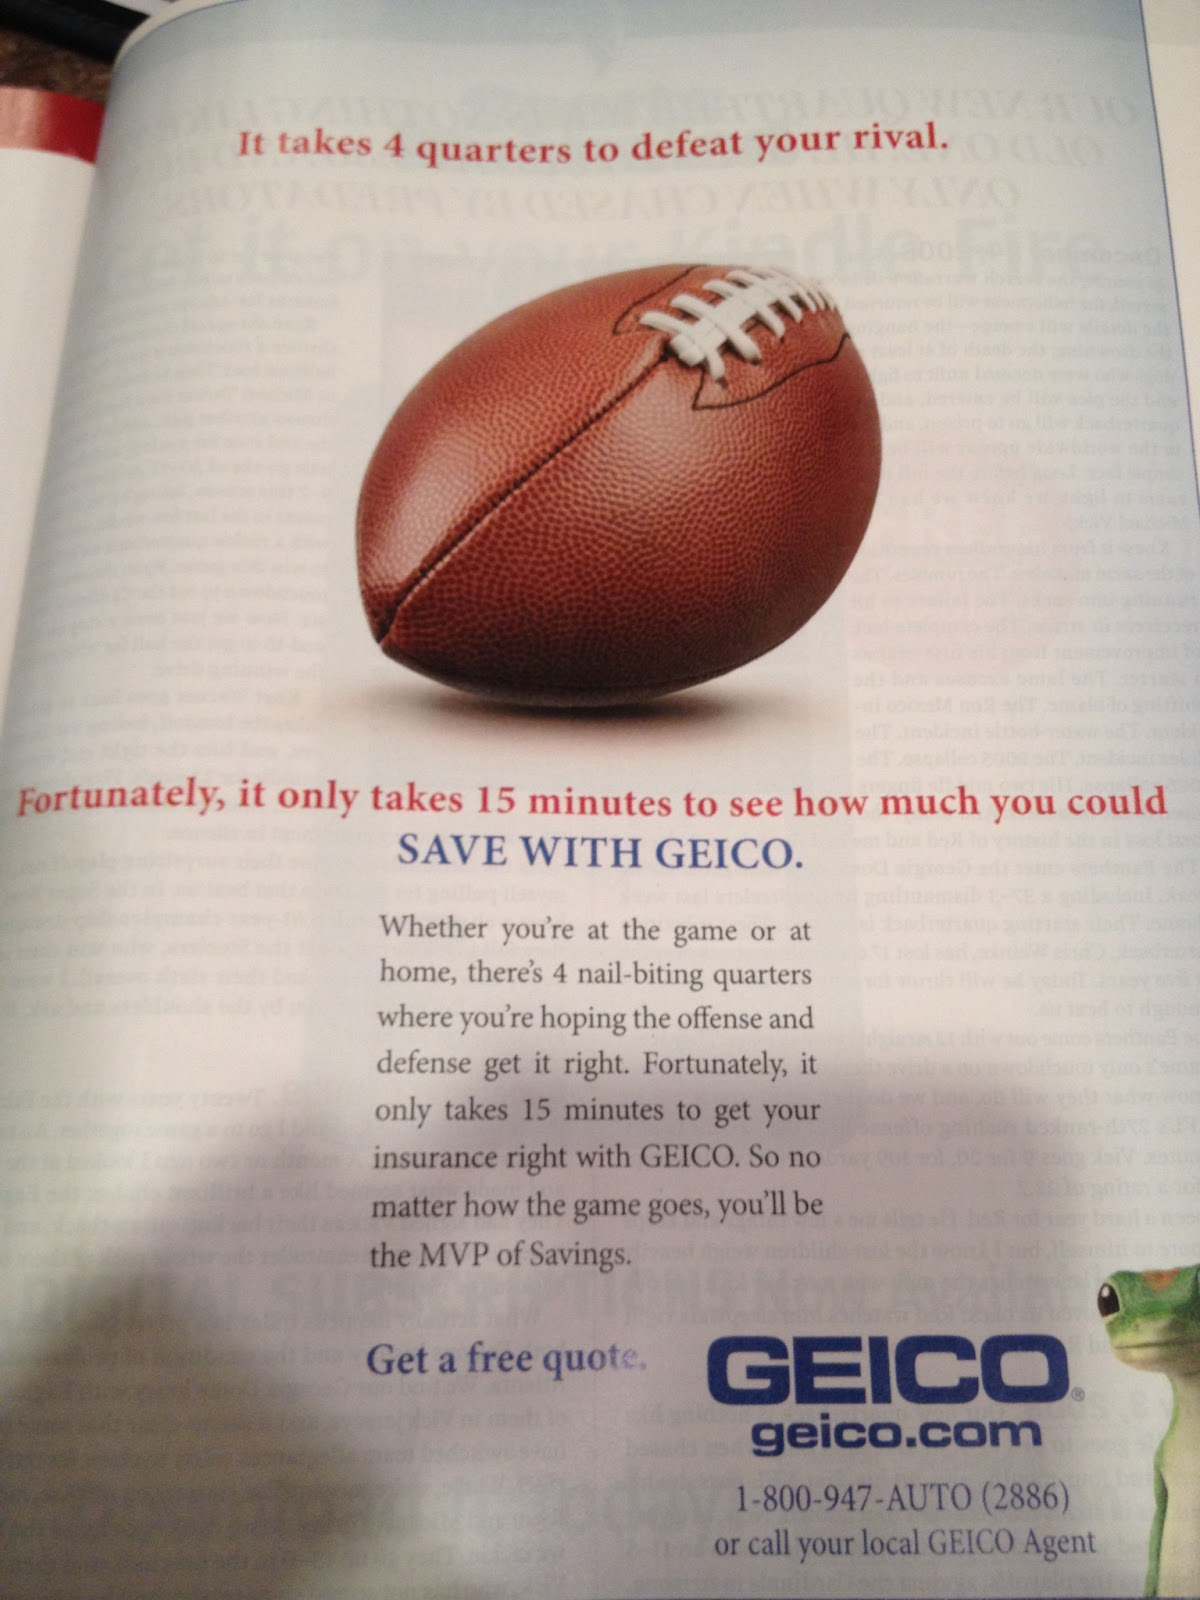 Geico Free Quote Medc 5310 Media And Culture Geico Print Ad  Sports Illustrated